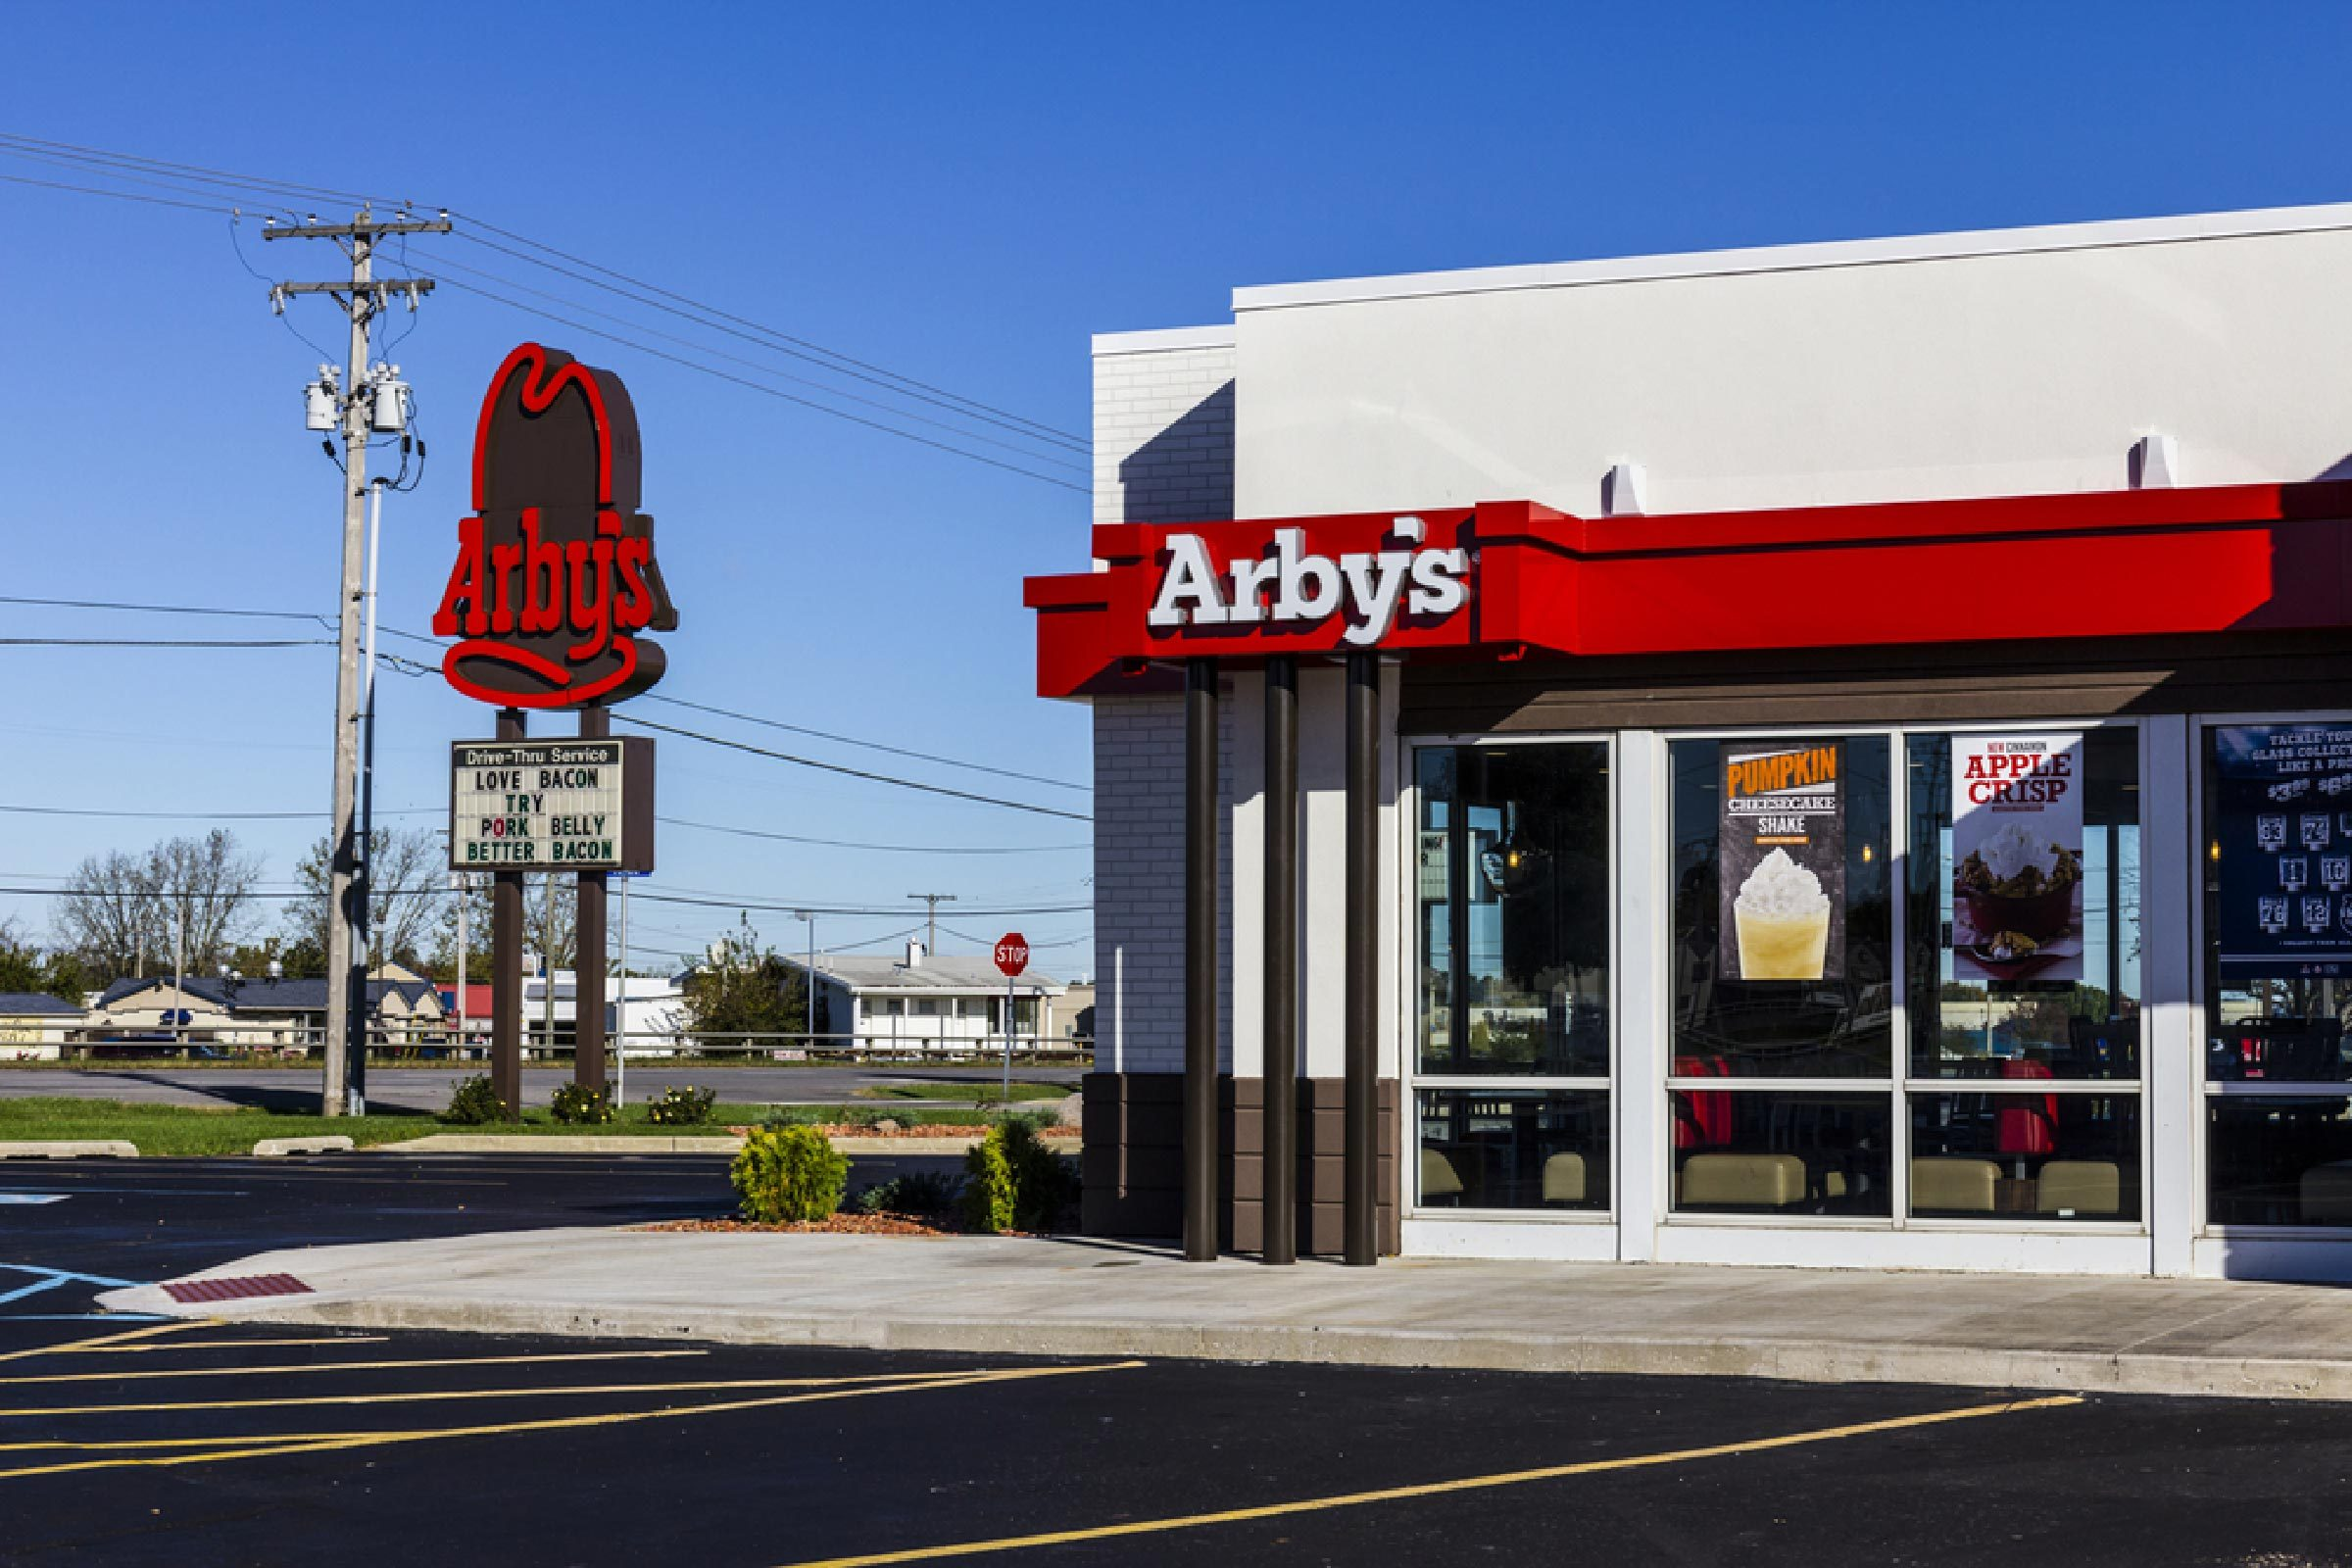 Indianapolis - Circa October 2016: Arby's Retail Fast Food Location. Arby's operates over 3,300 restaurants I